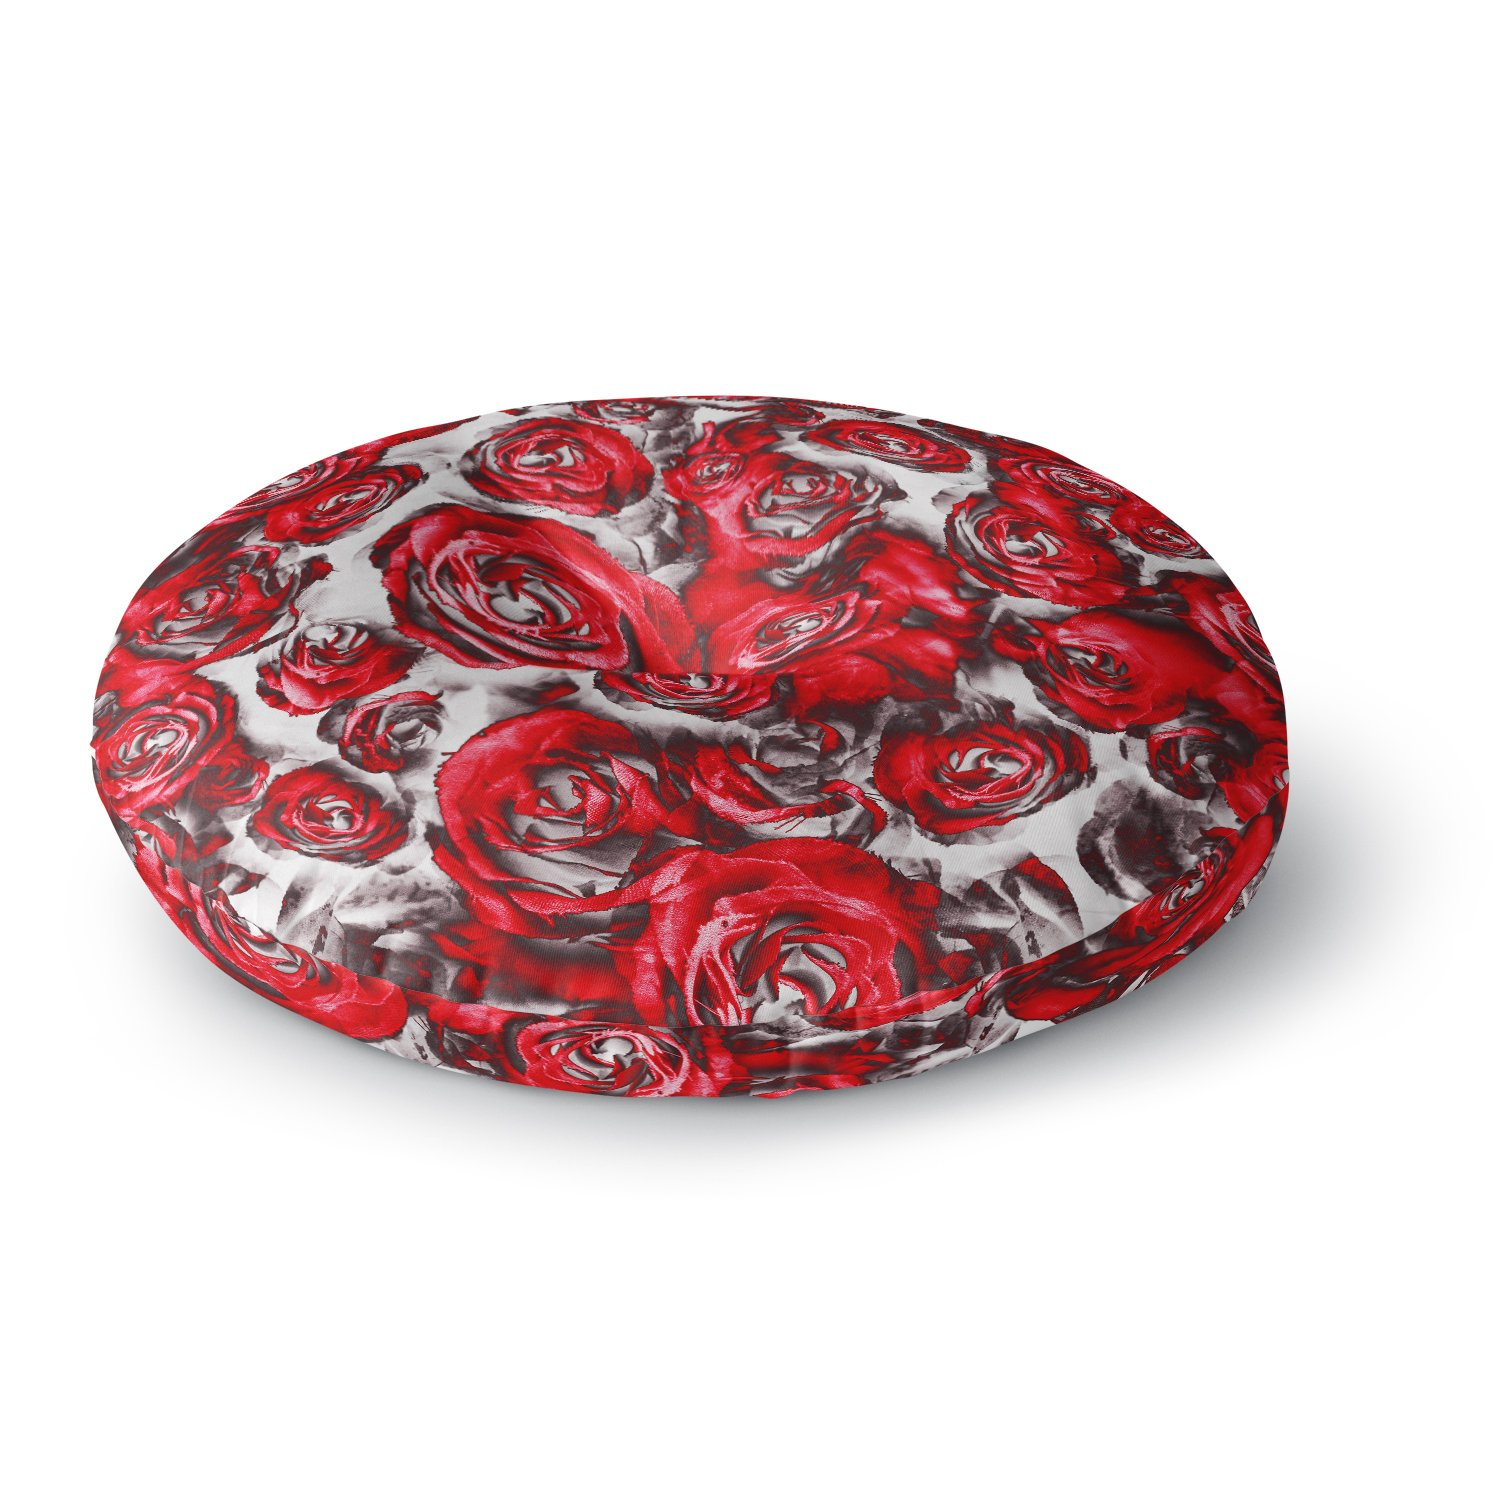 26 Round Floor Pillow Kess InHouse Dawid ROC Roses Floral Red Abstract